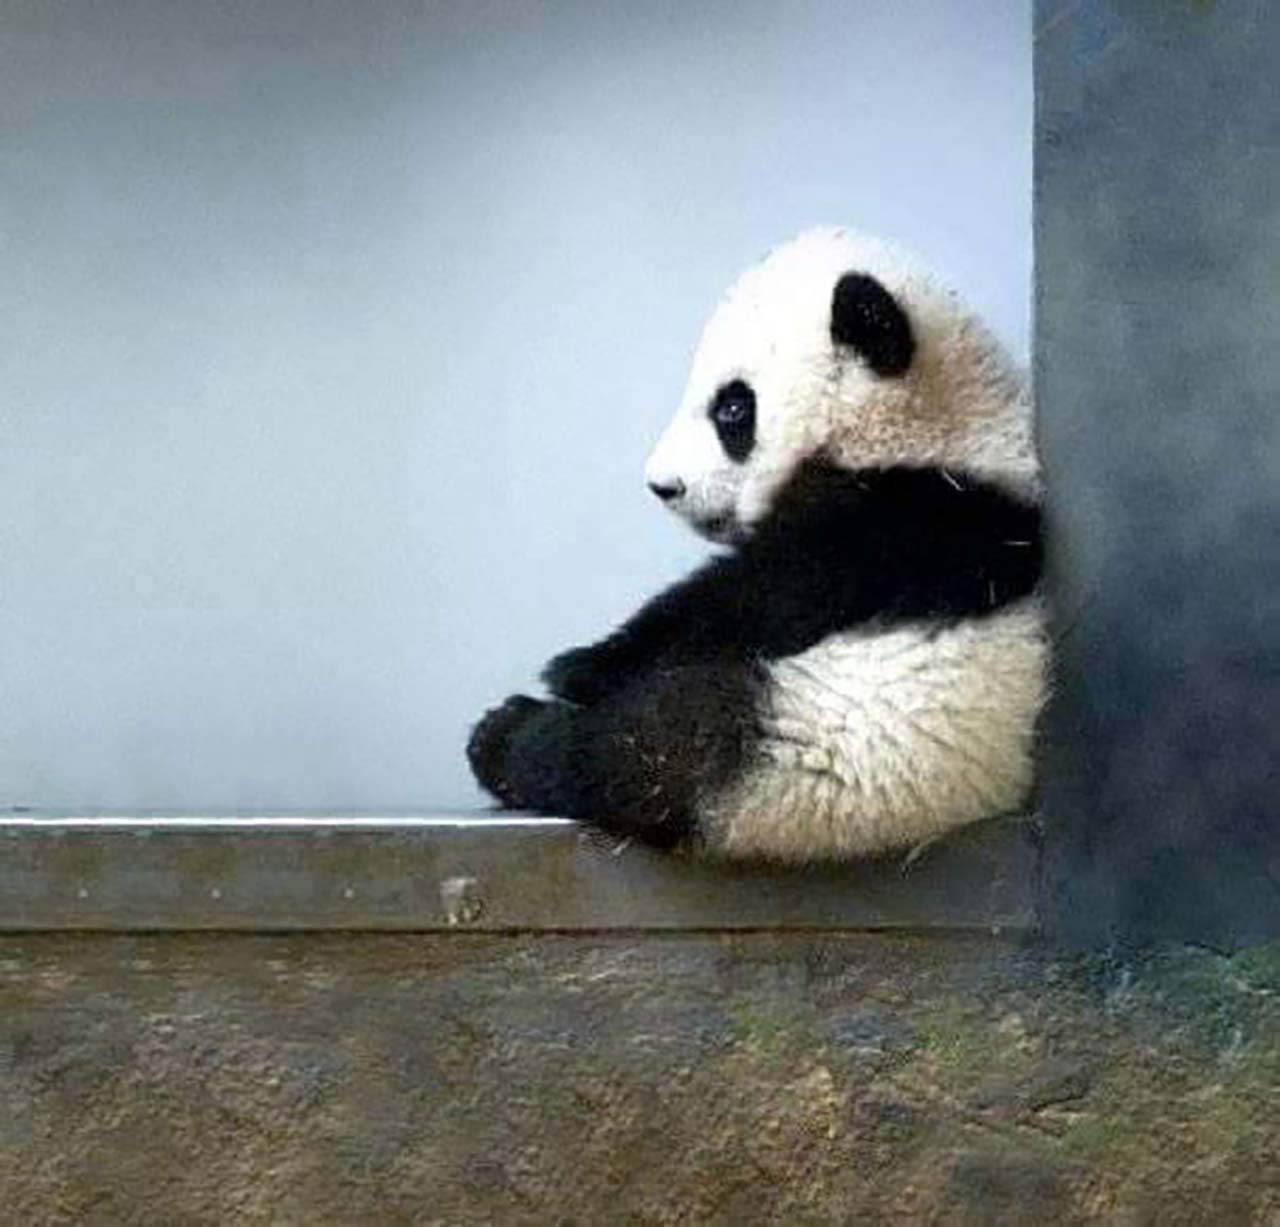 27 Adorable & Tiny Animals That Are Too Cute To Handle #11: Panda